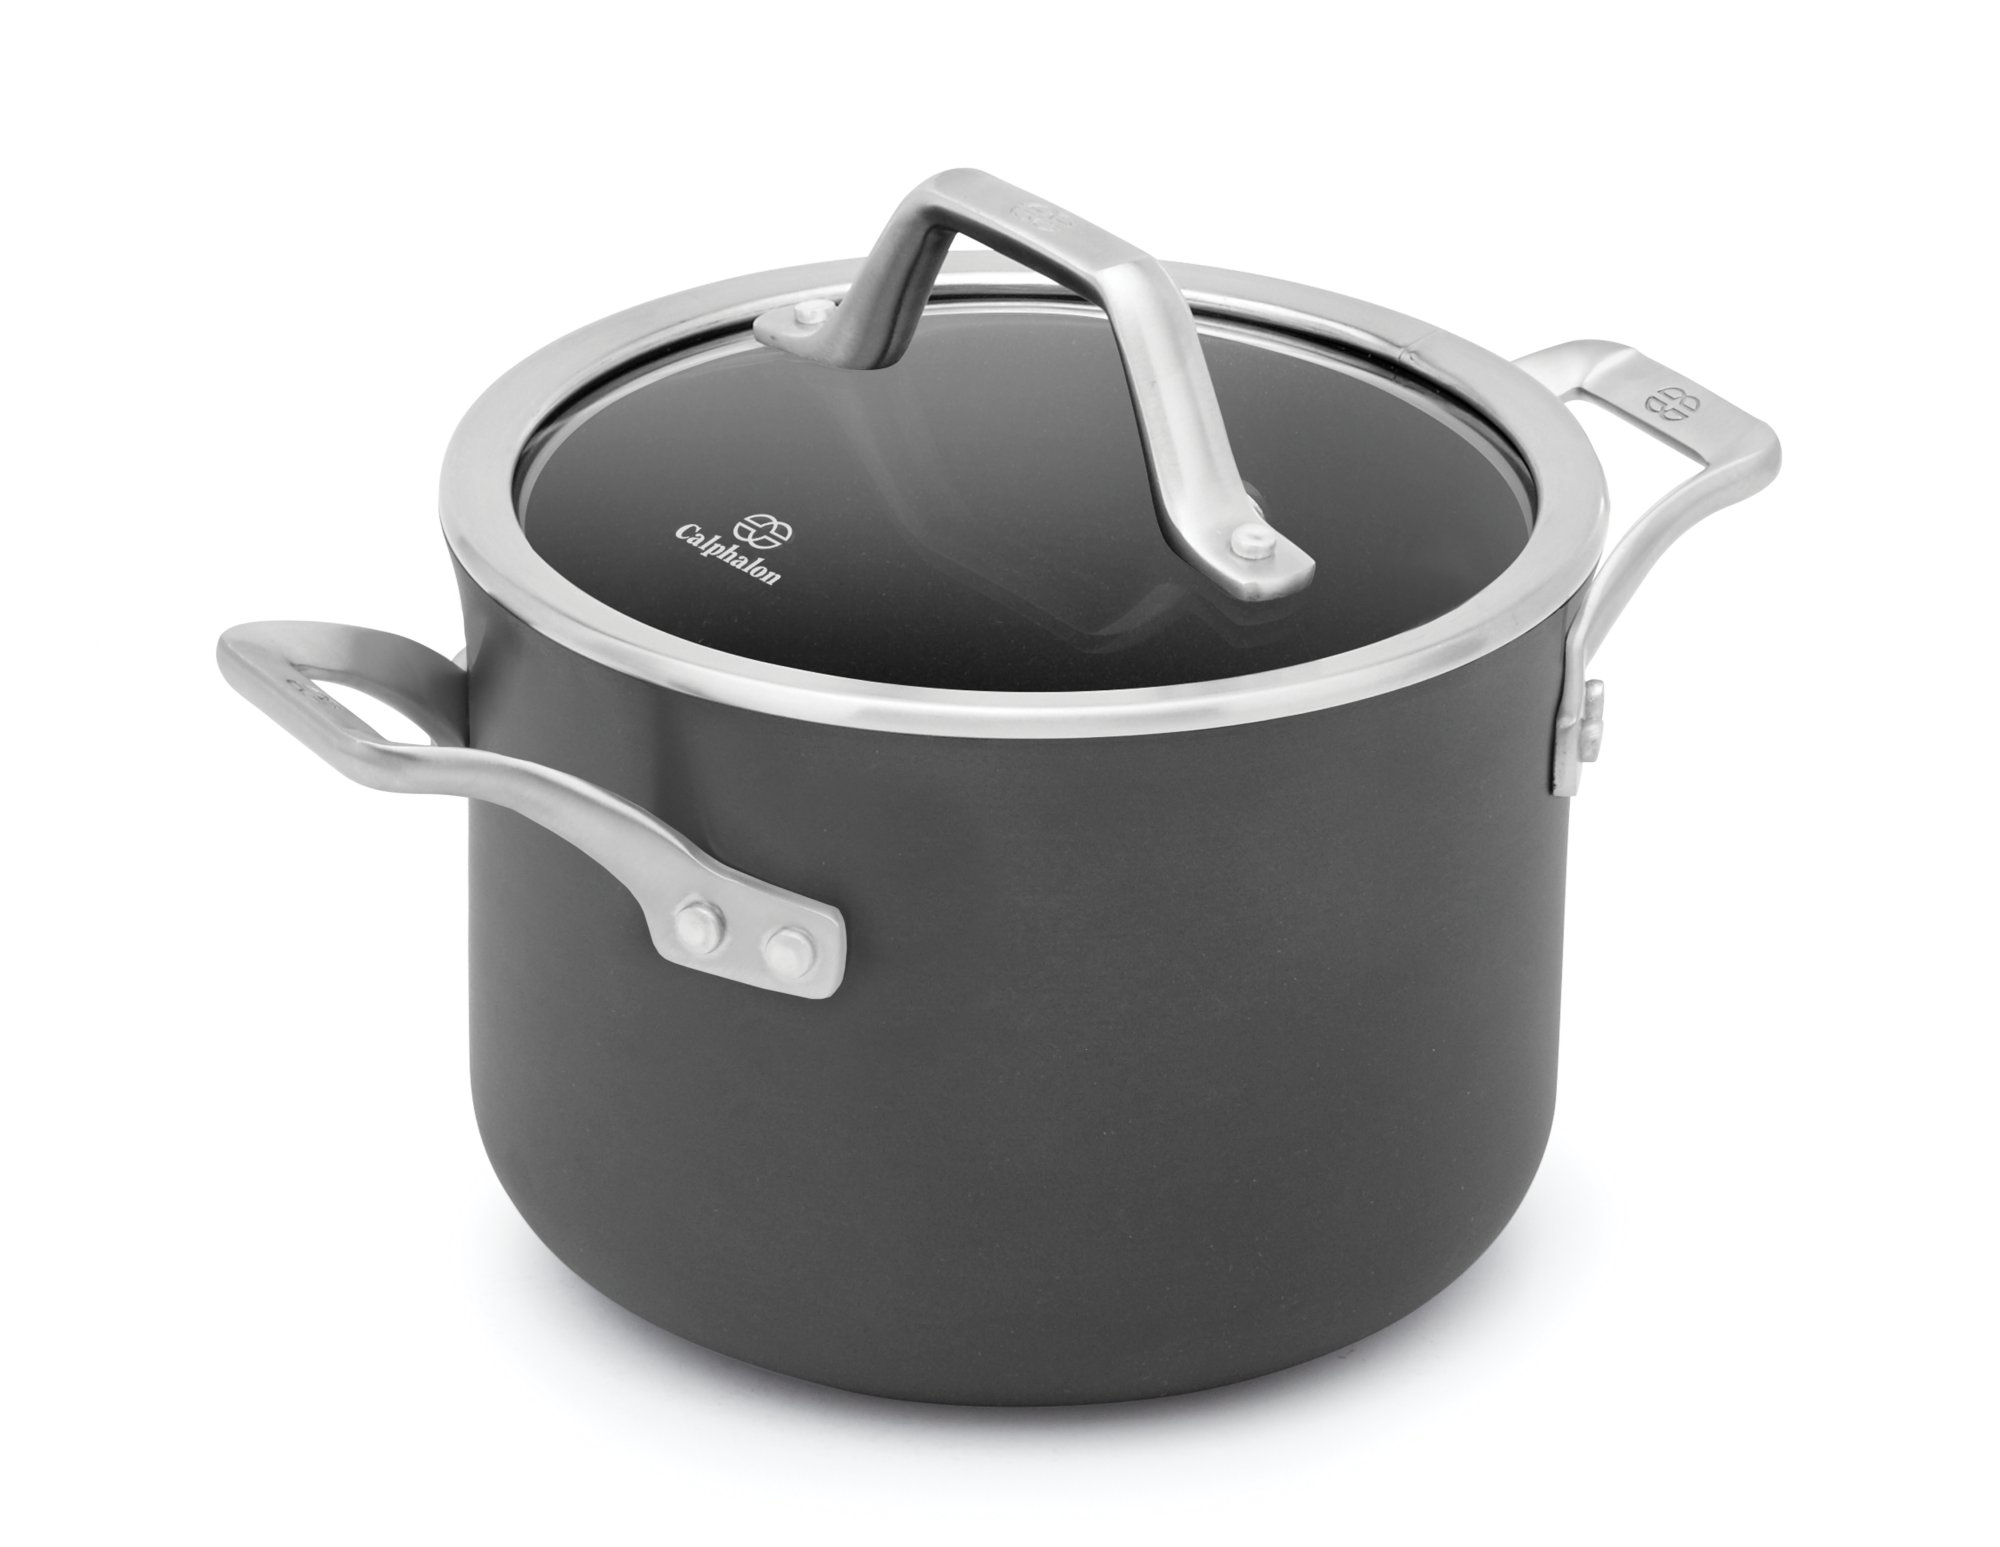 Calphalon Signature™ Nonstick 4-qt. Soup Pot with Cover